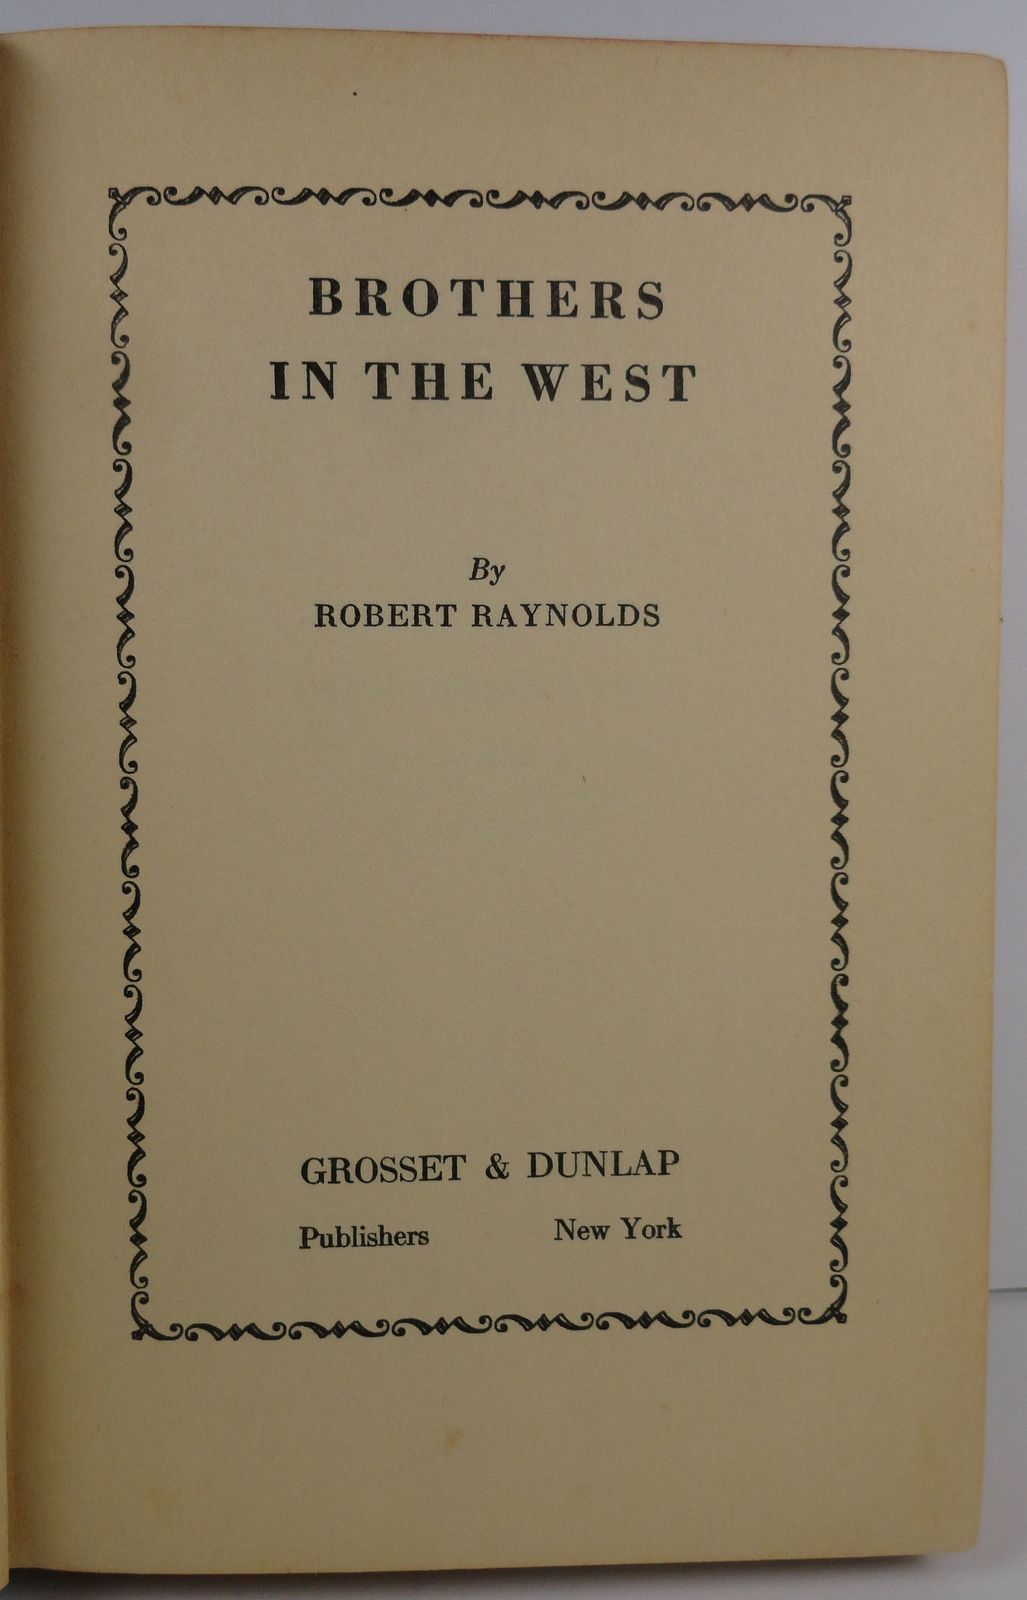 Brothers in the West by Robert Raynolds 1931